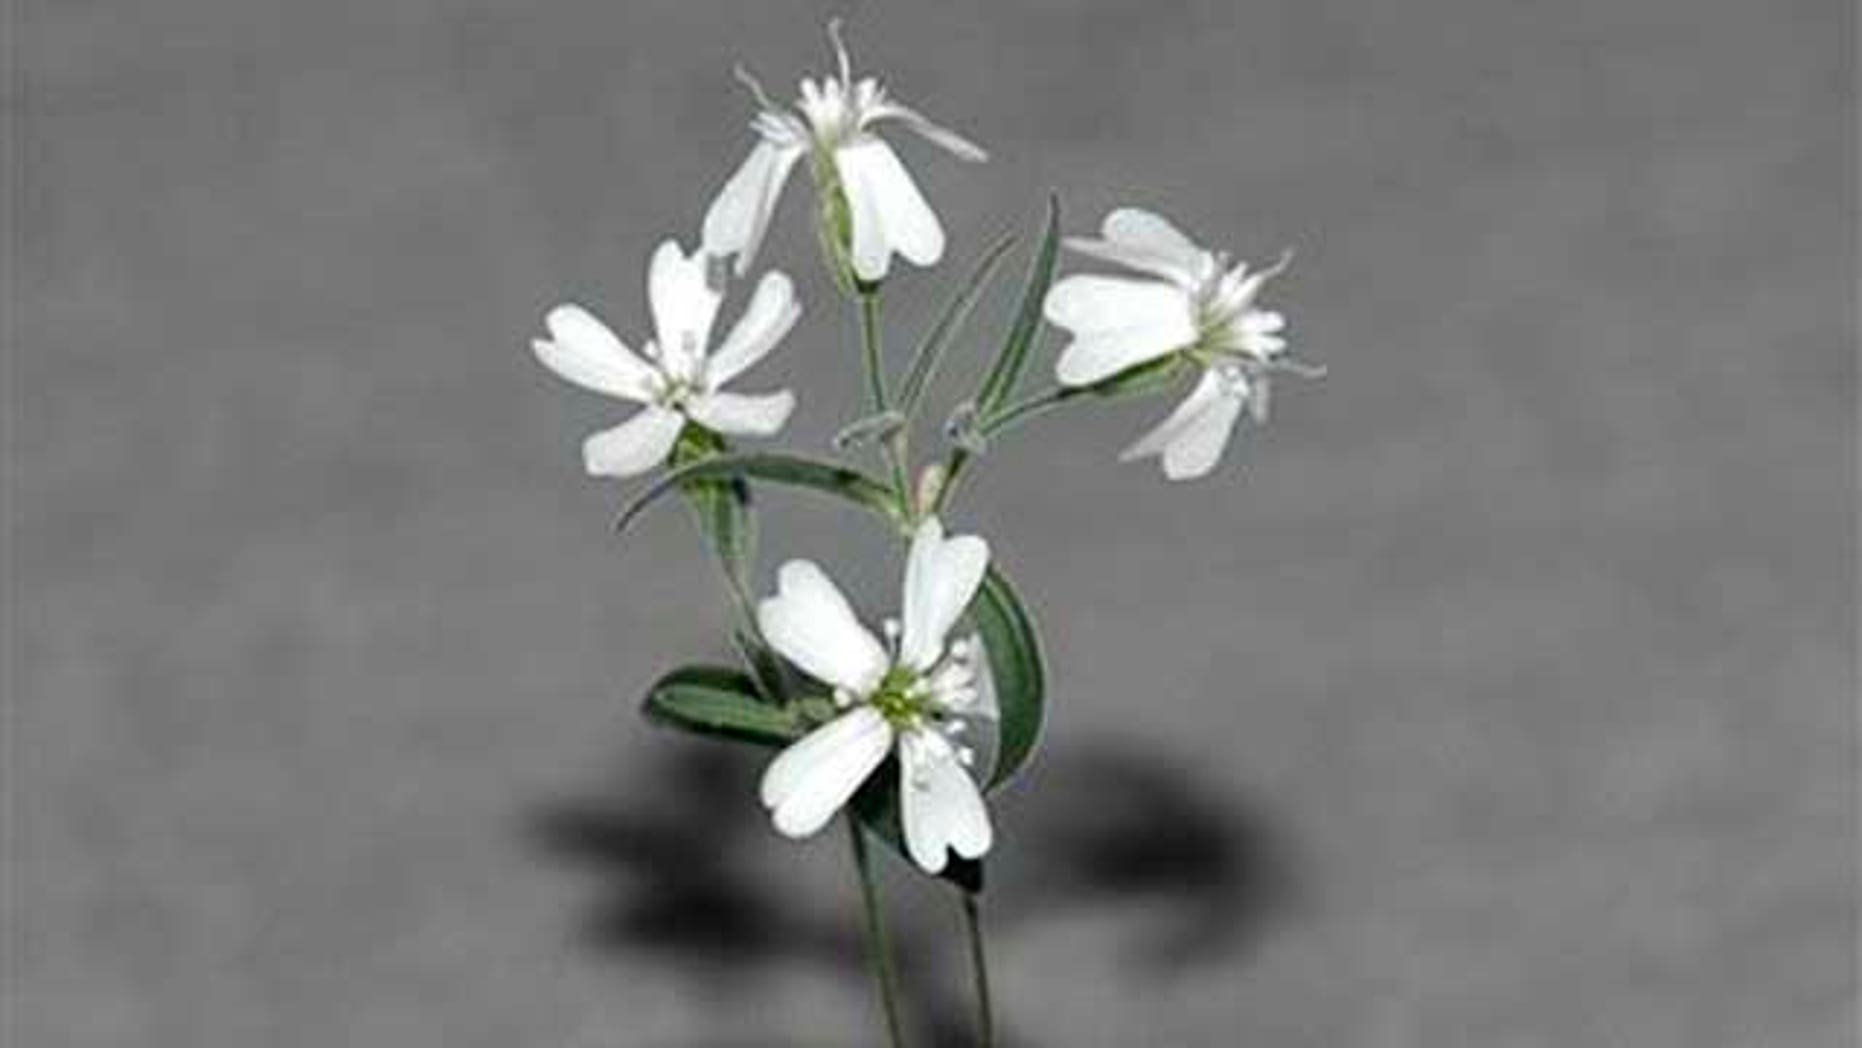 A Sylene stenophylla plant, which was regenerated from tissue of fossil fruit found in a squirrel burrow that had been stuck in Siberian permafrost for over 30,000 years. It is the oldest plant ever to be regenerated and it is fertile, producing white flowers and viable seeds.